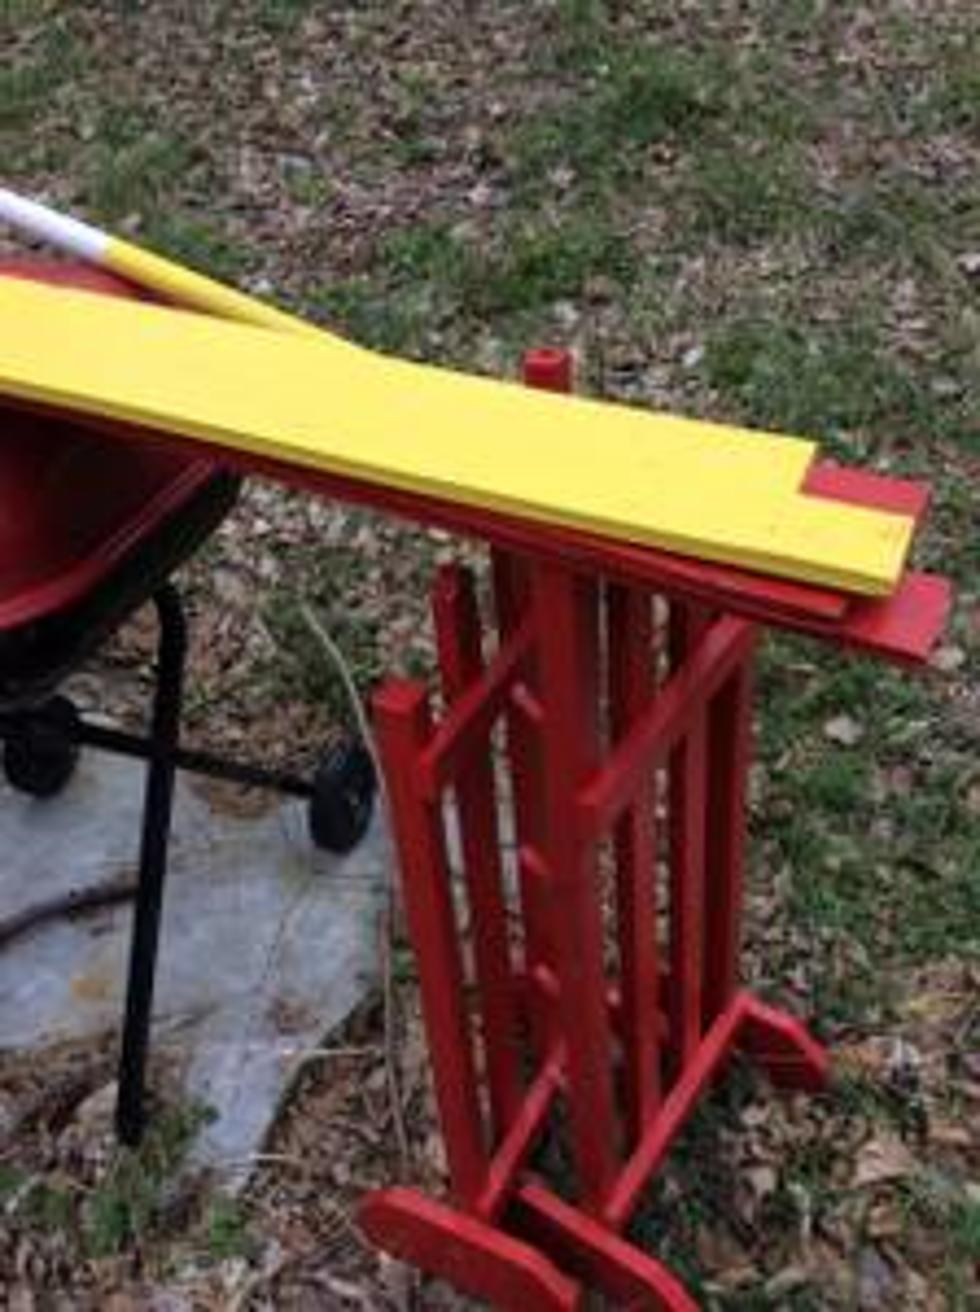 Connecticut Craigslist: One Man's Junk Is Another's Treasure